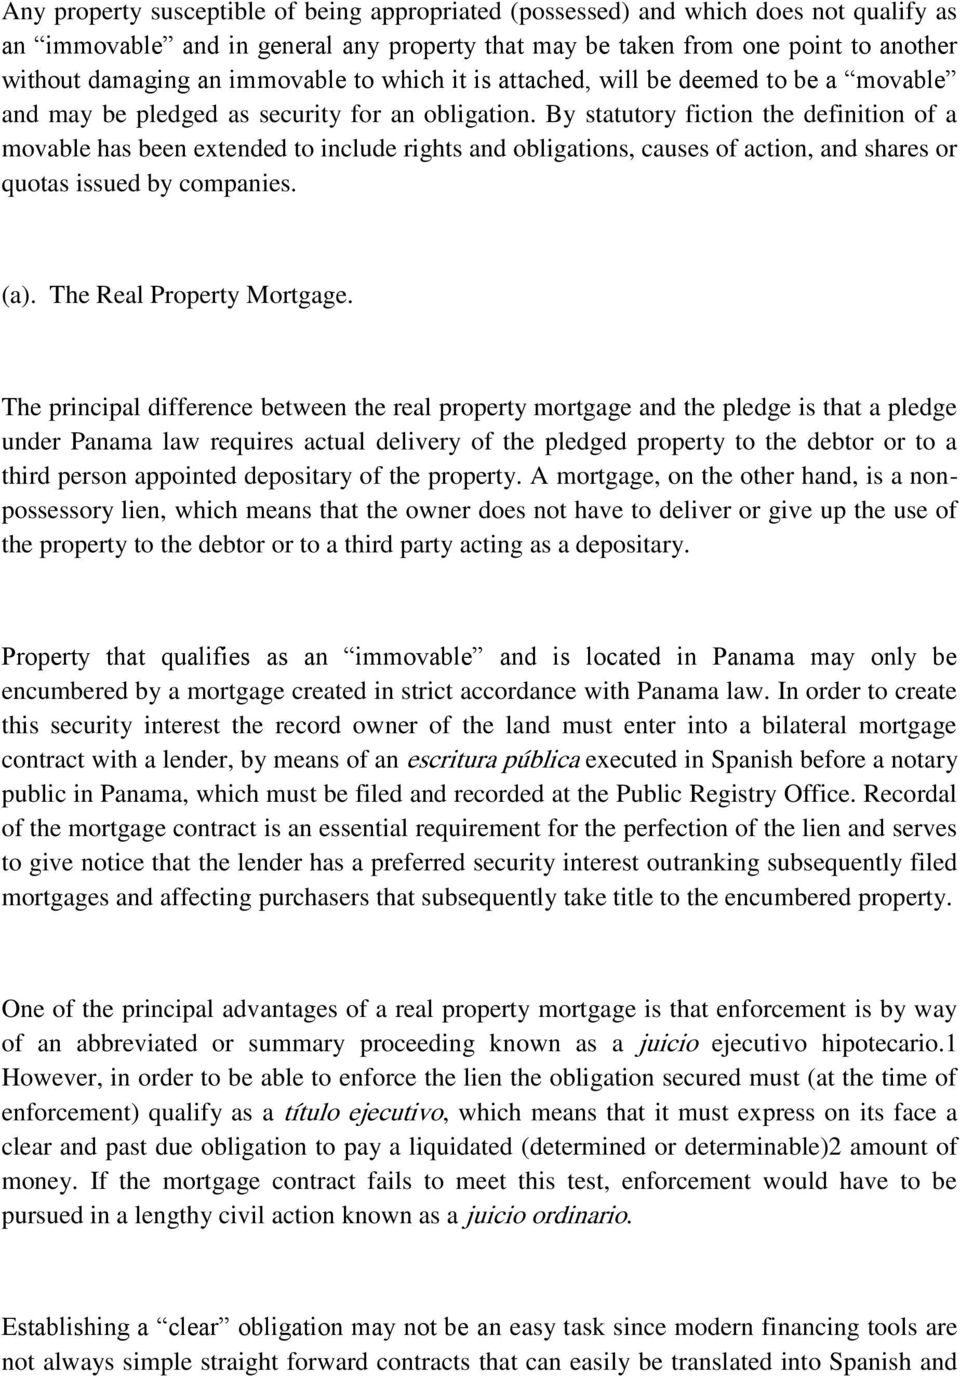 By statutory fiction the definition of a movable has been extended to include rights and obligations, causes of action, and shares or quotas issued by companies. (a). The Real Property Mortgage.